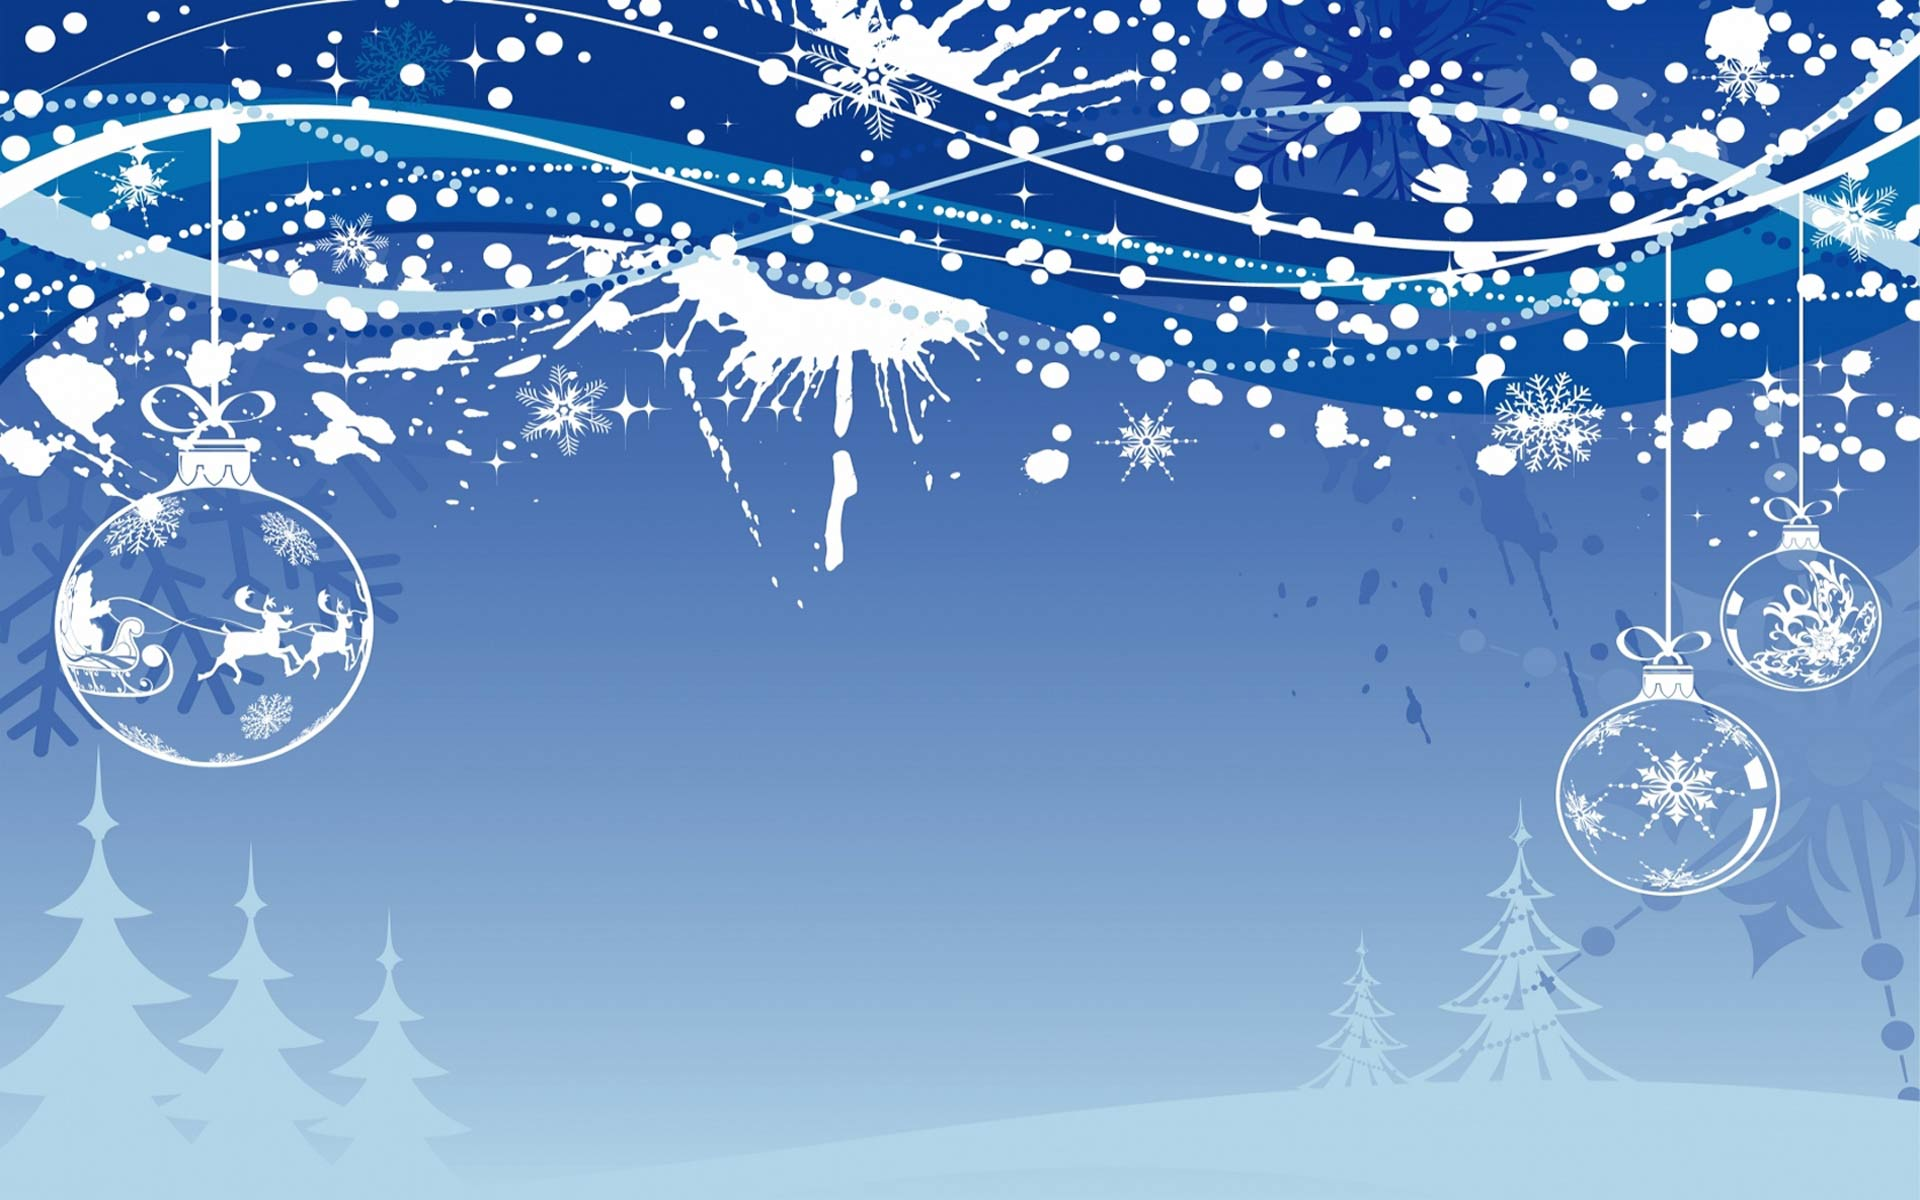 Christmas Wallpaper For Desktop 1920x1200